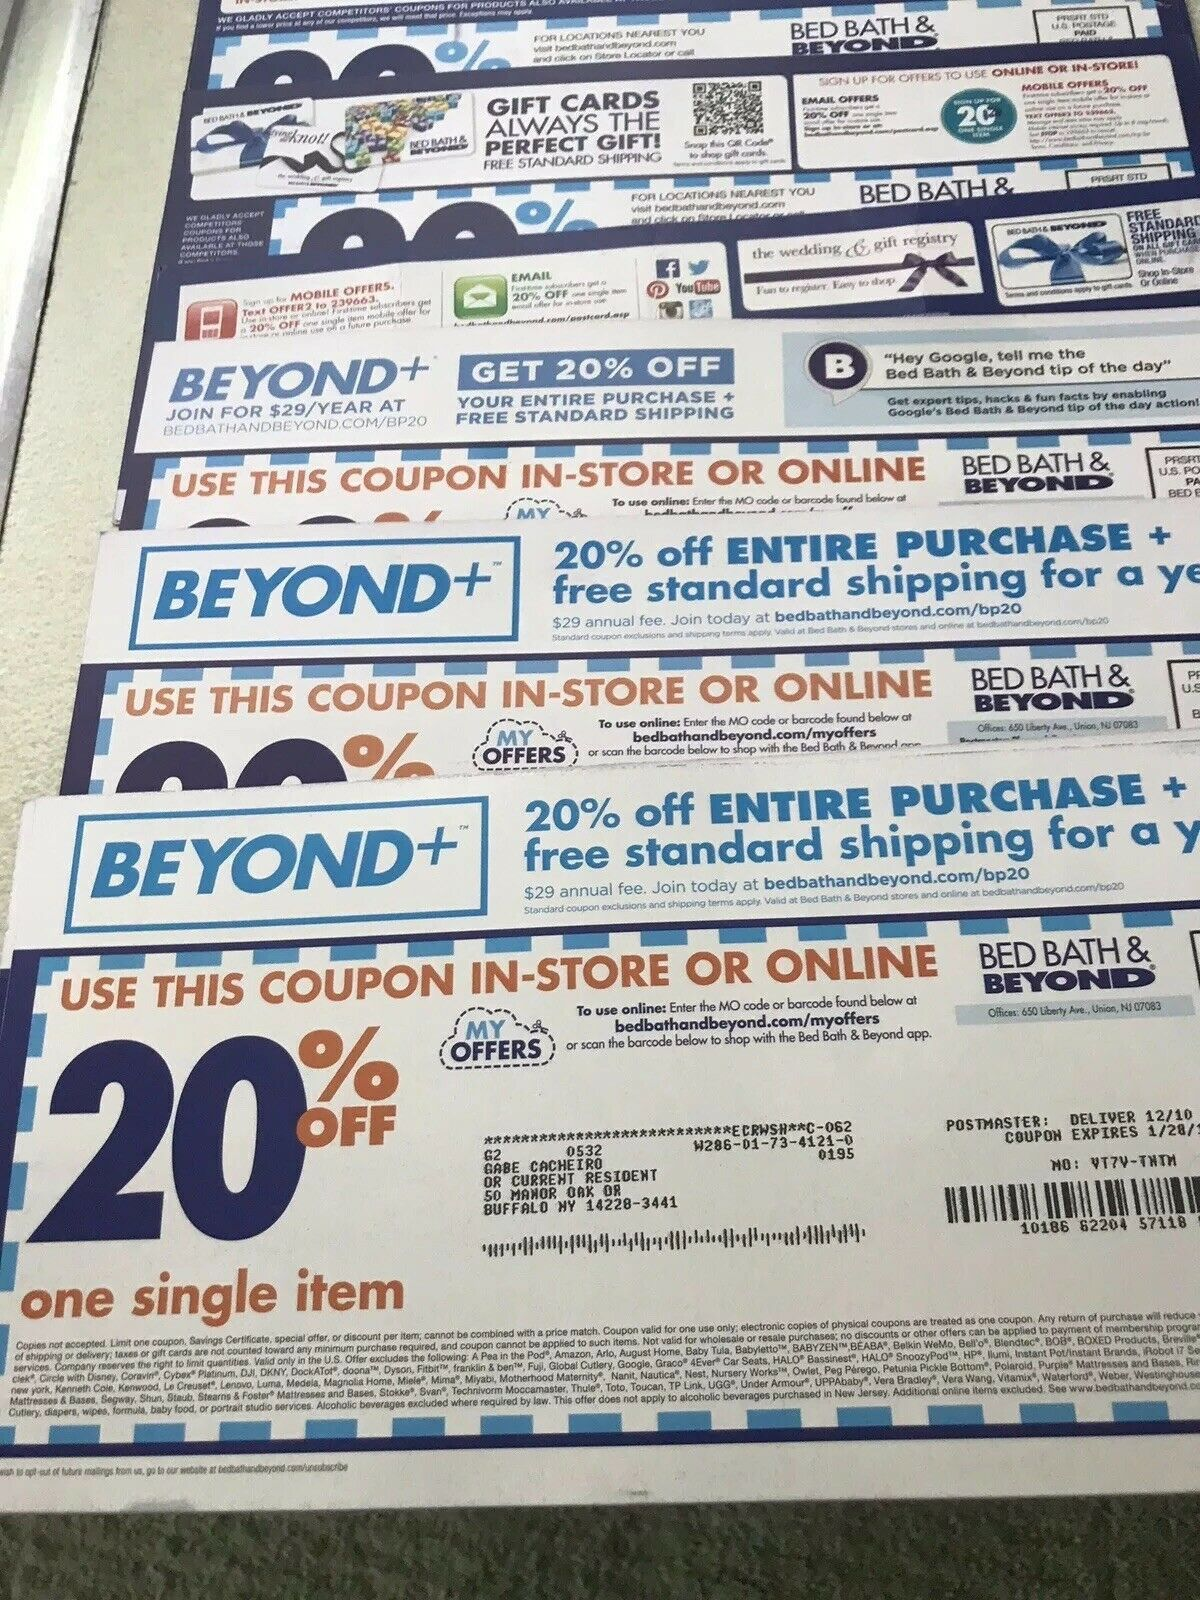 Bed Bath And Beyond 20 Off One Single Item Coupons Lot Of 25